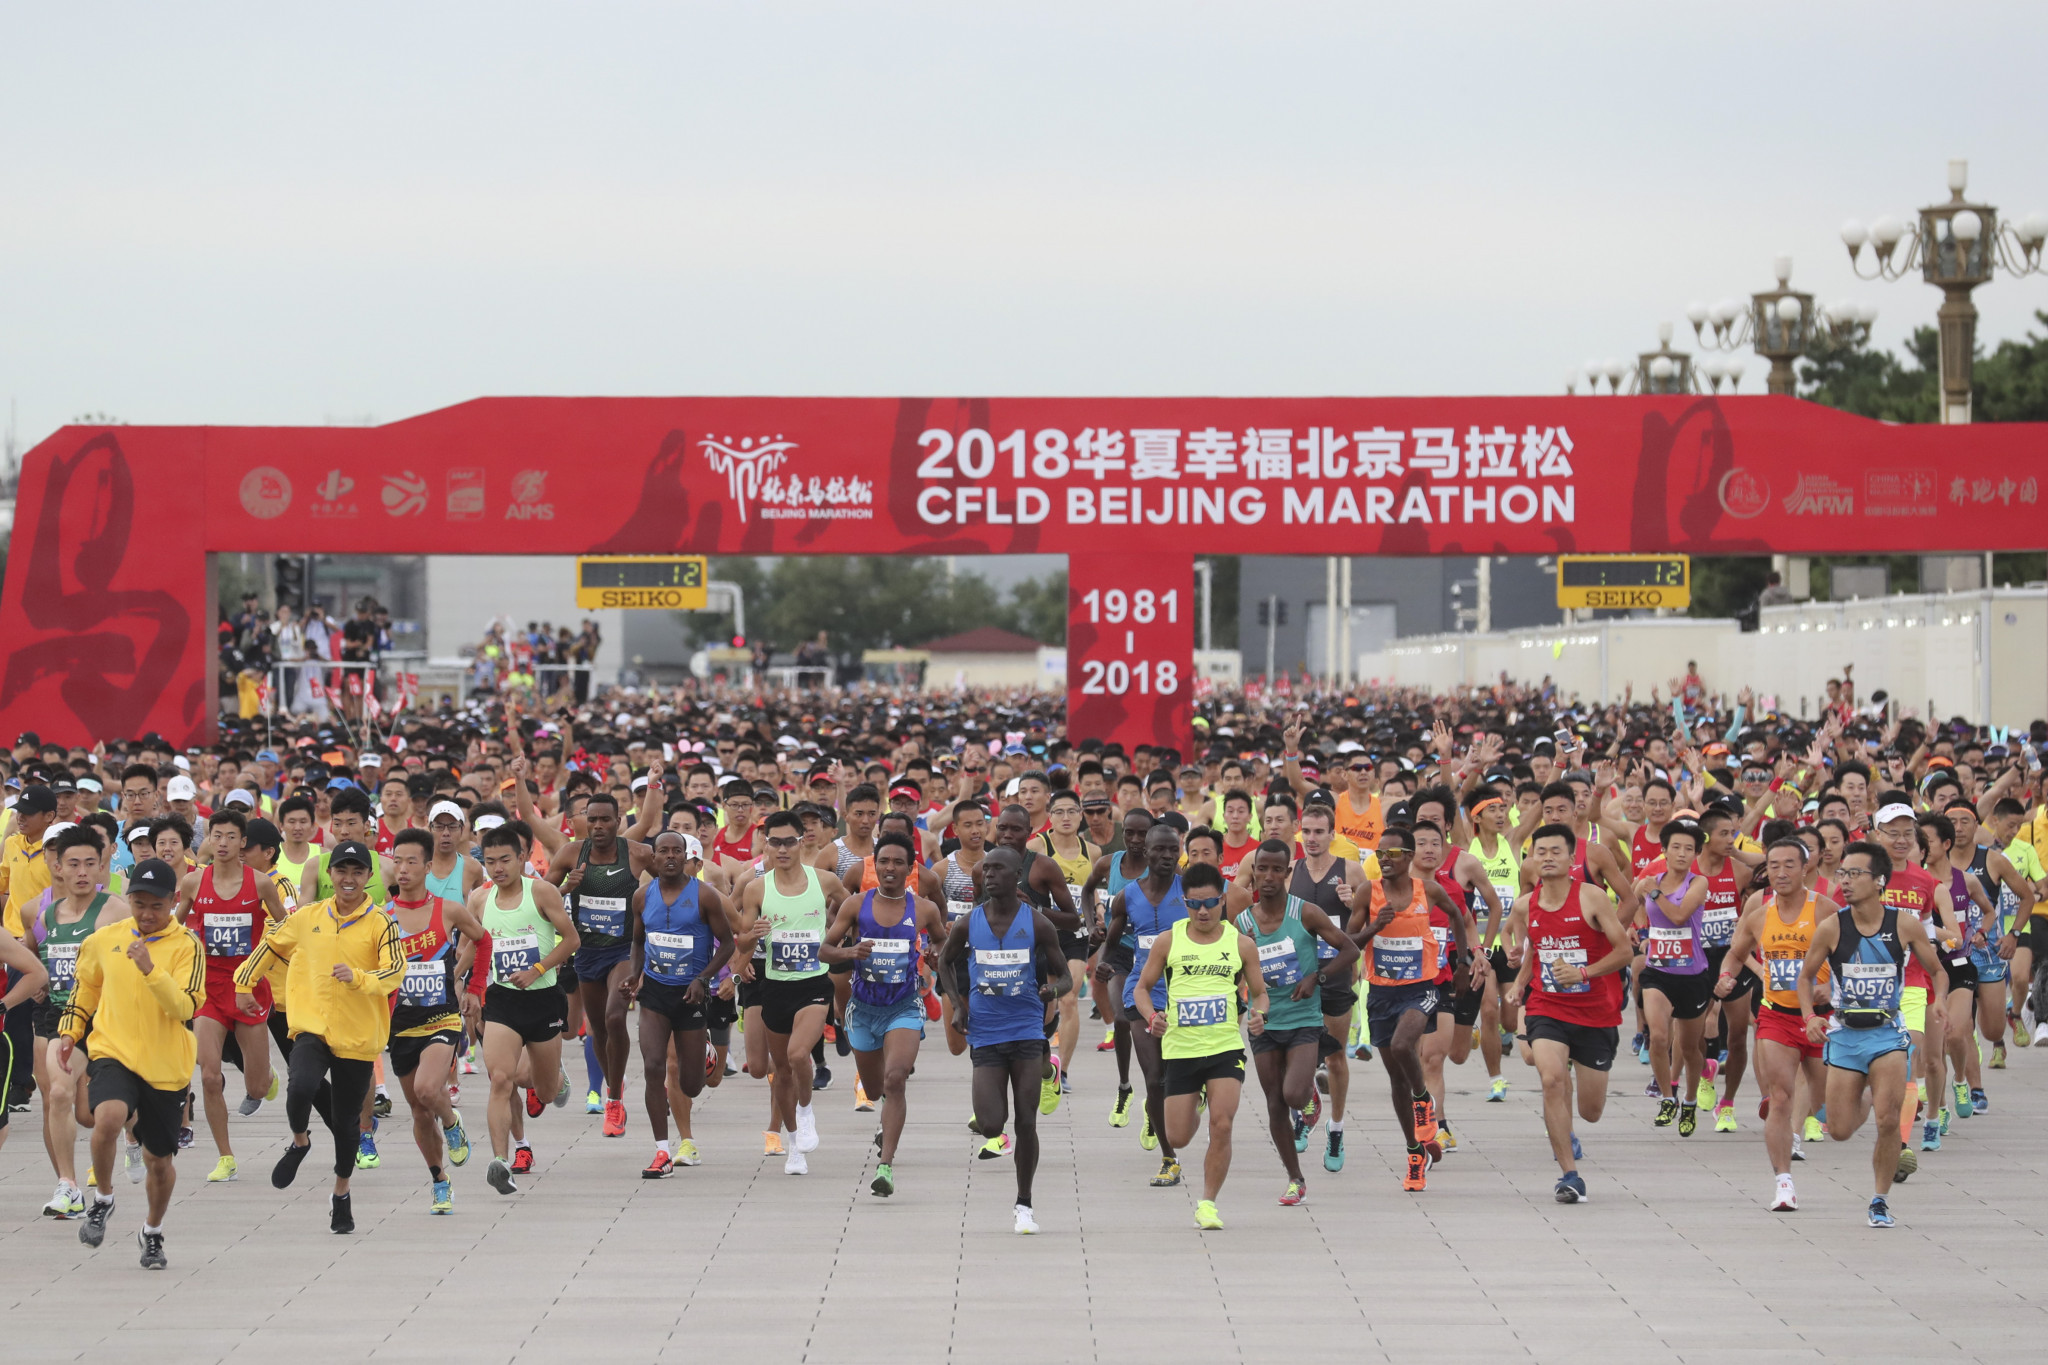 Beijing Marathon postponed as city aims to contain COVID-19 outbreak in time for 2022 Winter Olympic Games